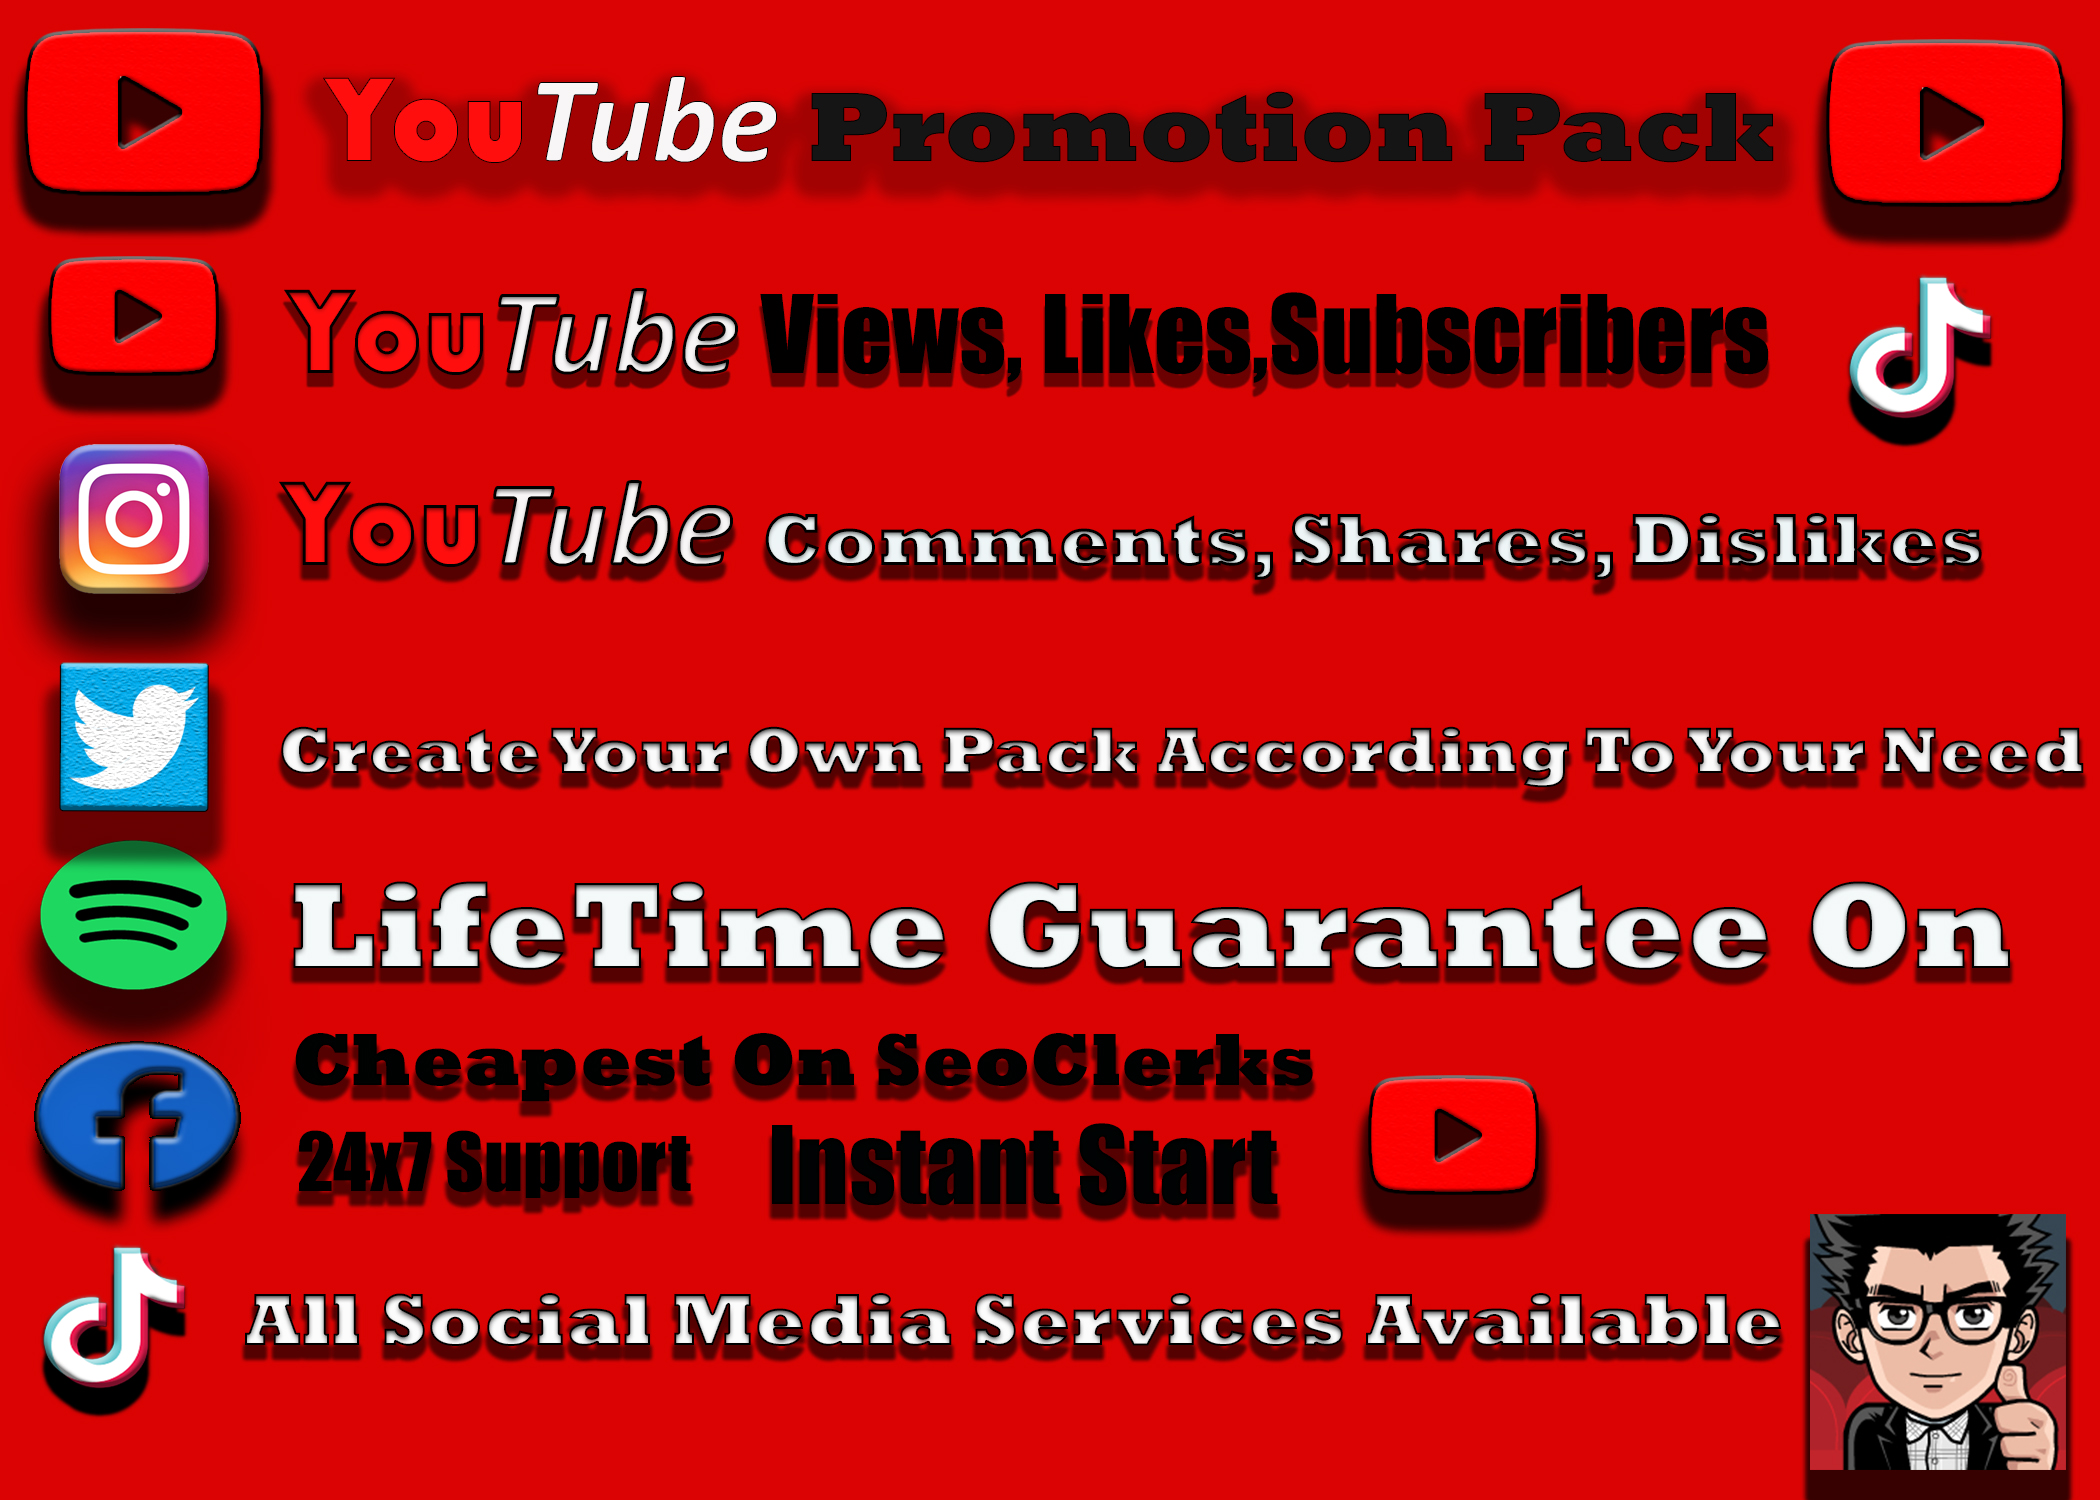 Organic YouTube 5k Video Promotions and 100 Thumbs Up 12-24 hr Delivery Non drop